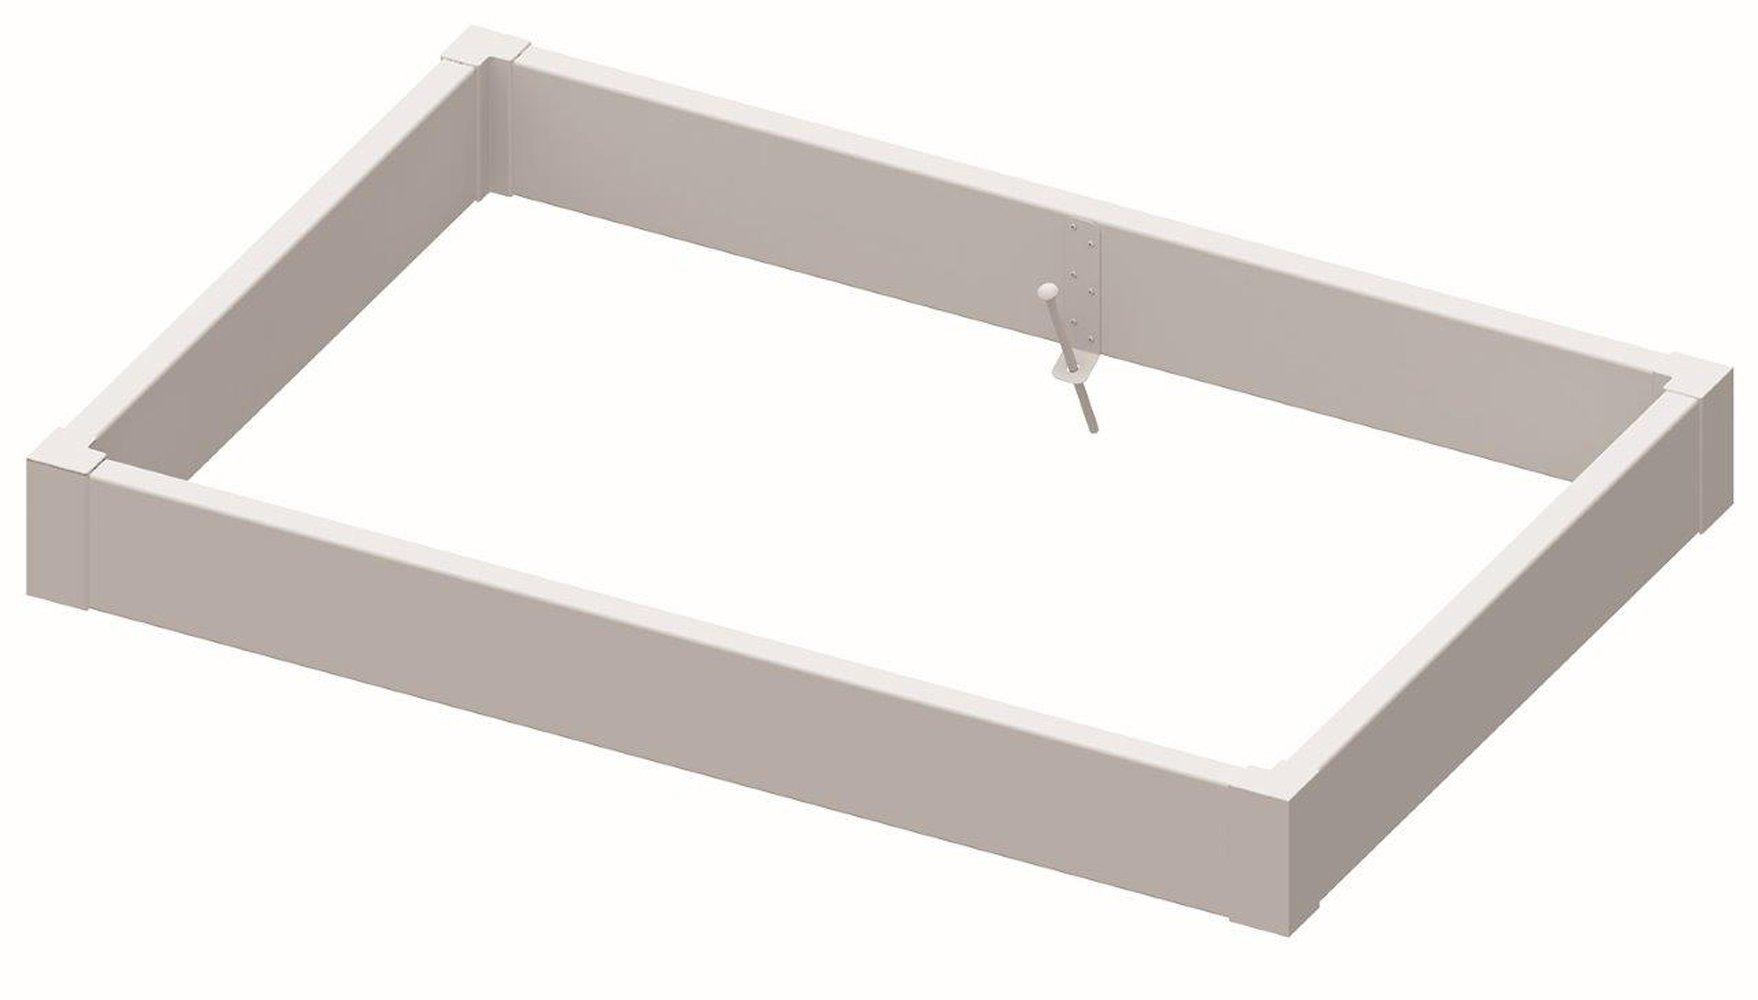 Superior Lawn and Garden 815604608 Raised Bed Kit, White by Superior Lawn and Garden